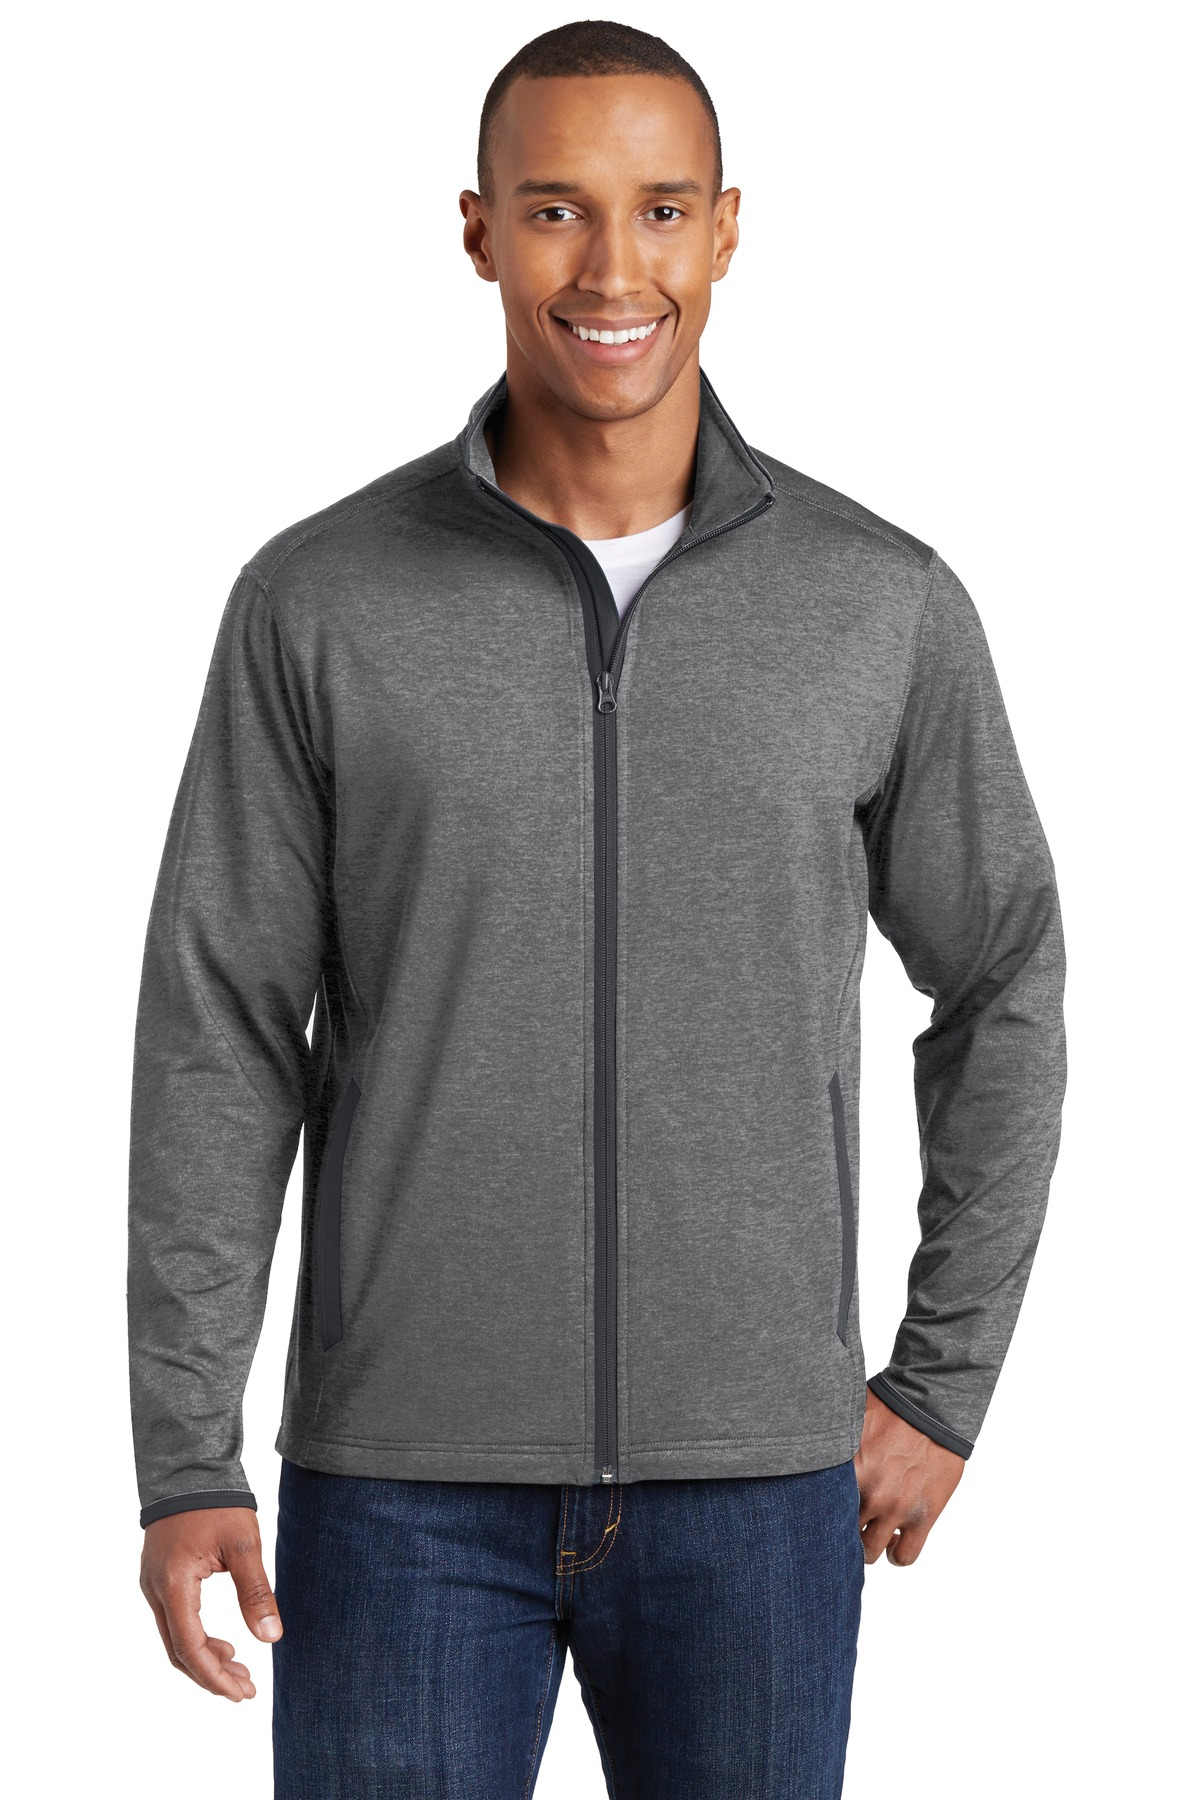 Sport-Tek ®  Sport-Wick ®  Stretch Contrast Full-Zip Jacket.  ST853 - Charcoal Grey Heather/ Charcoal Grey